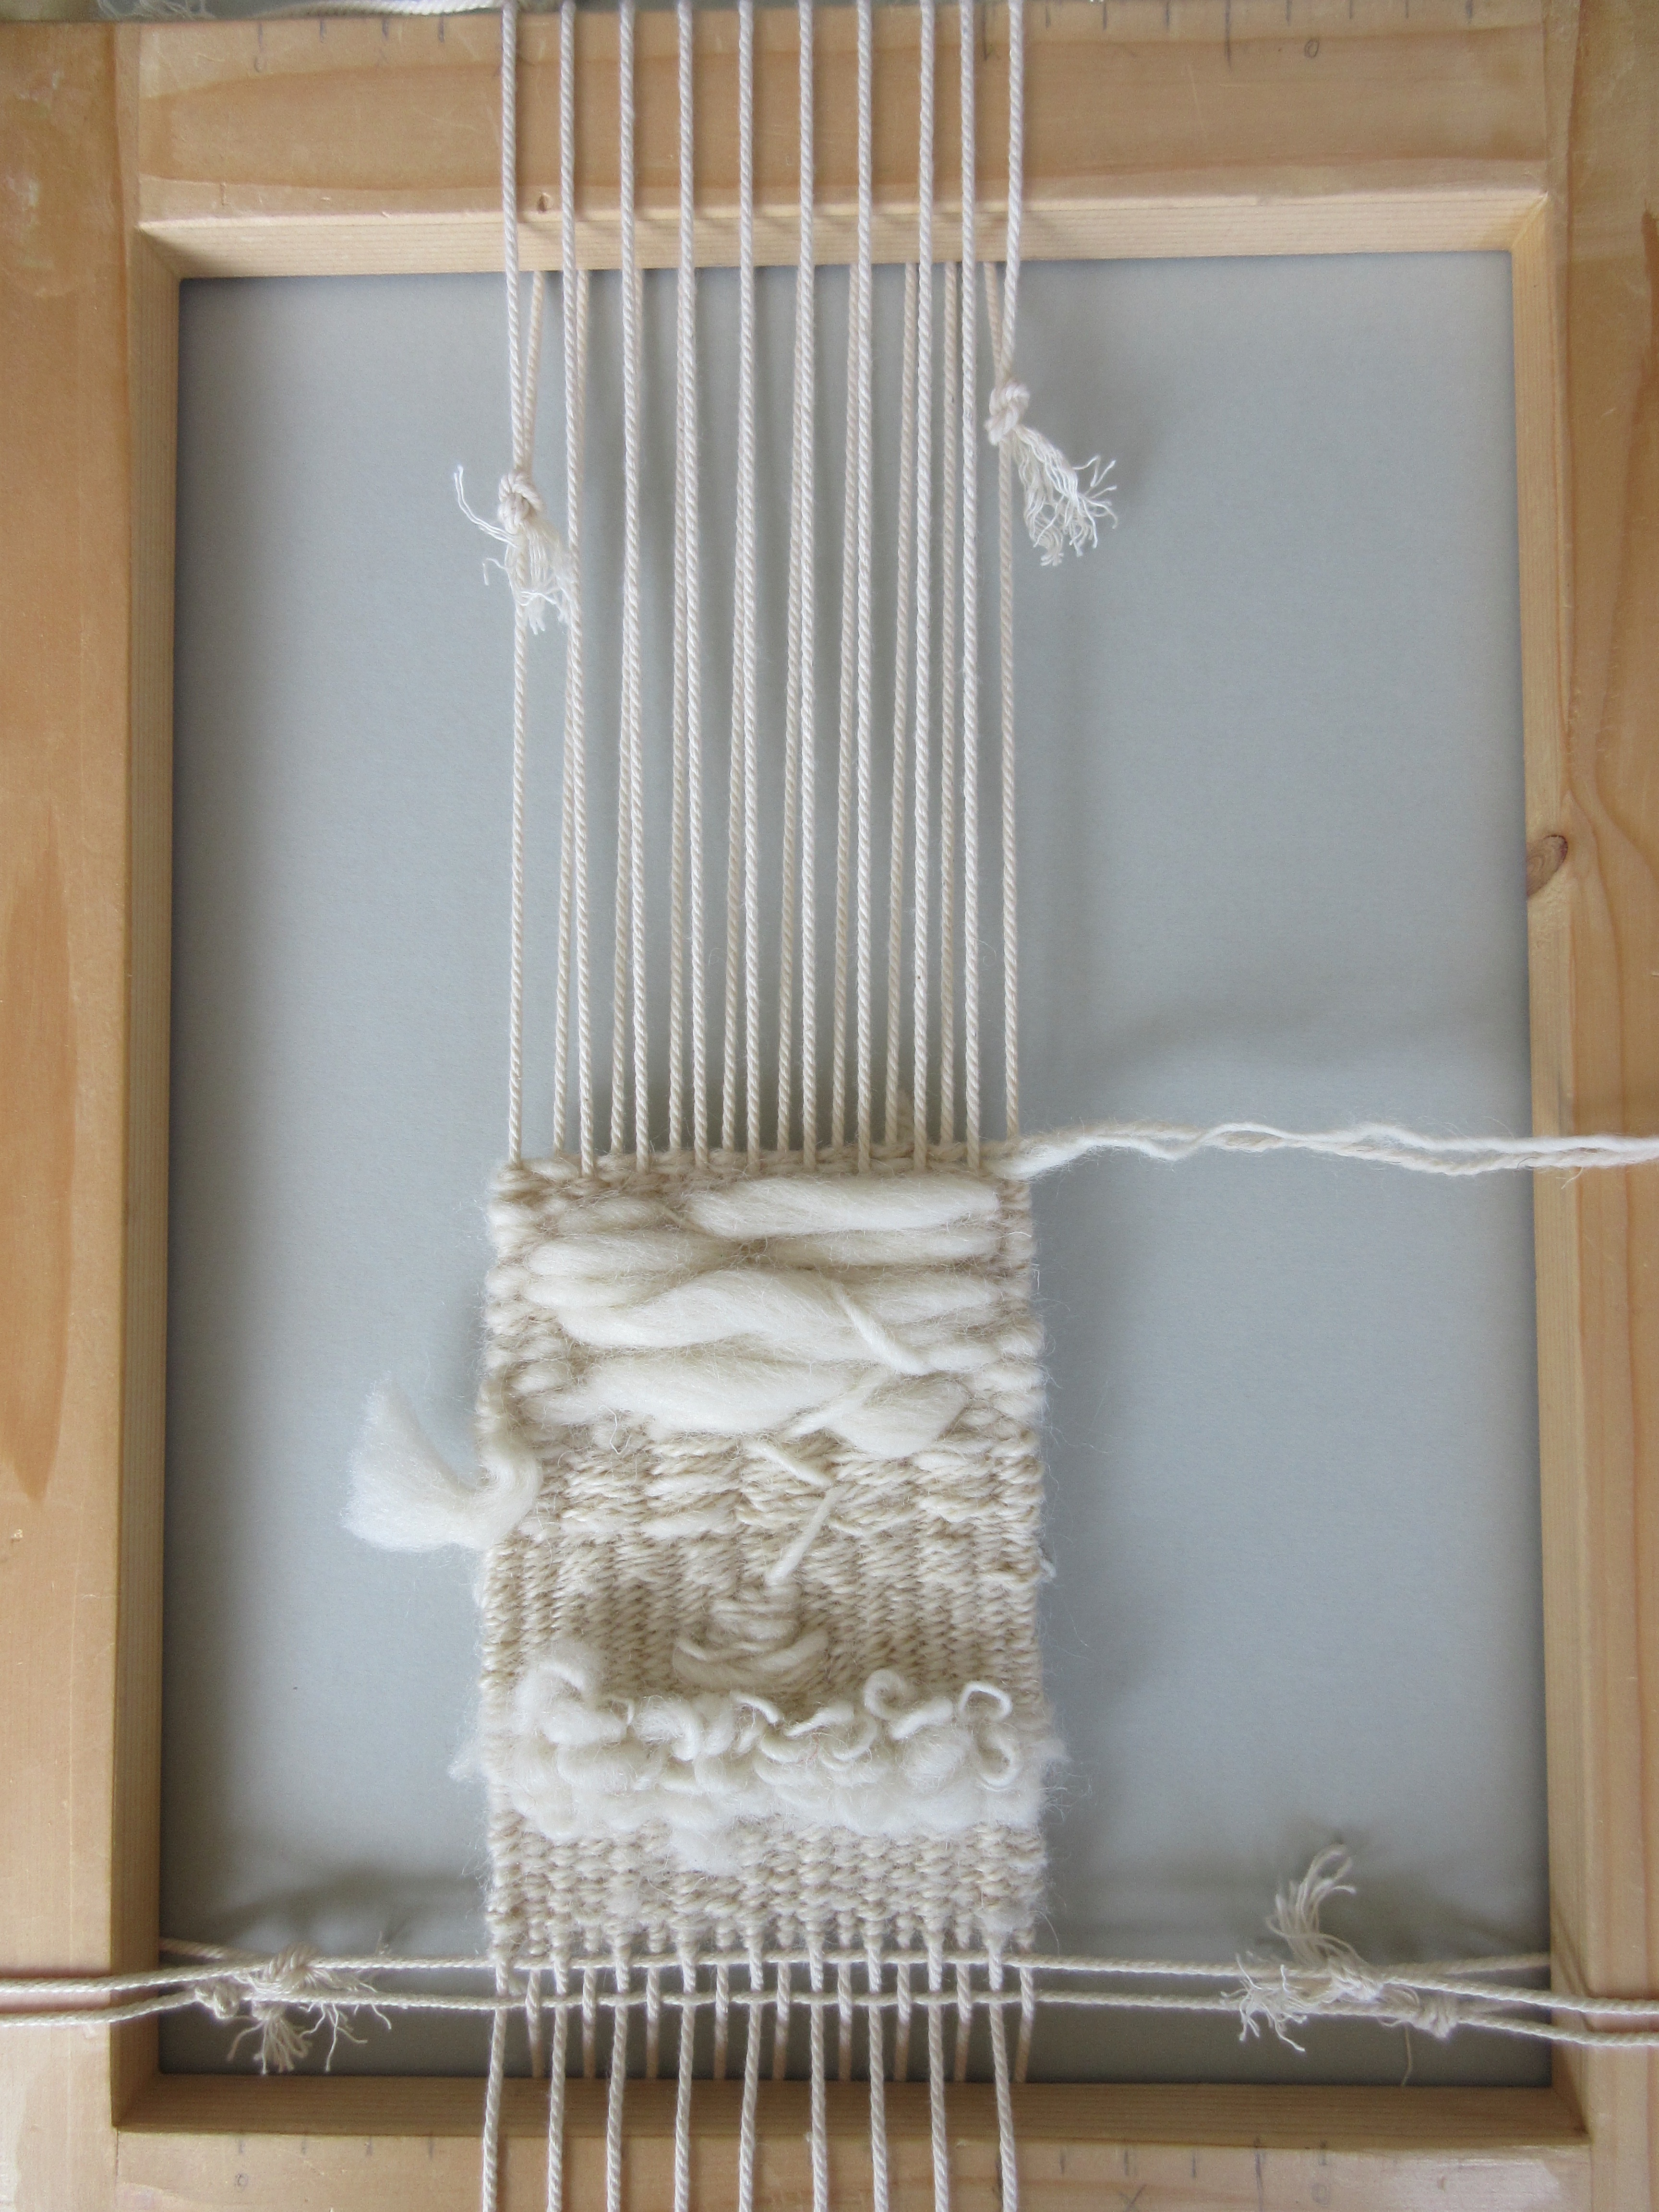 Introduction to Art Weaving